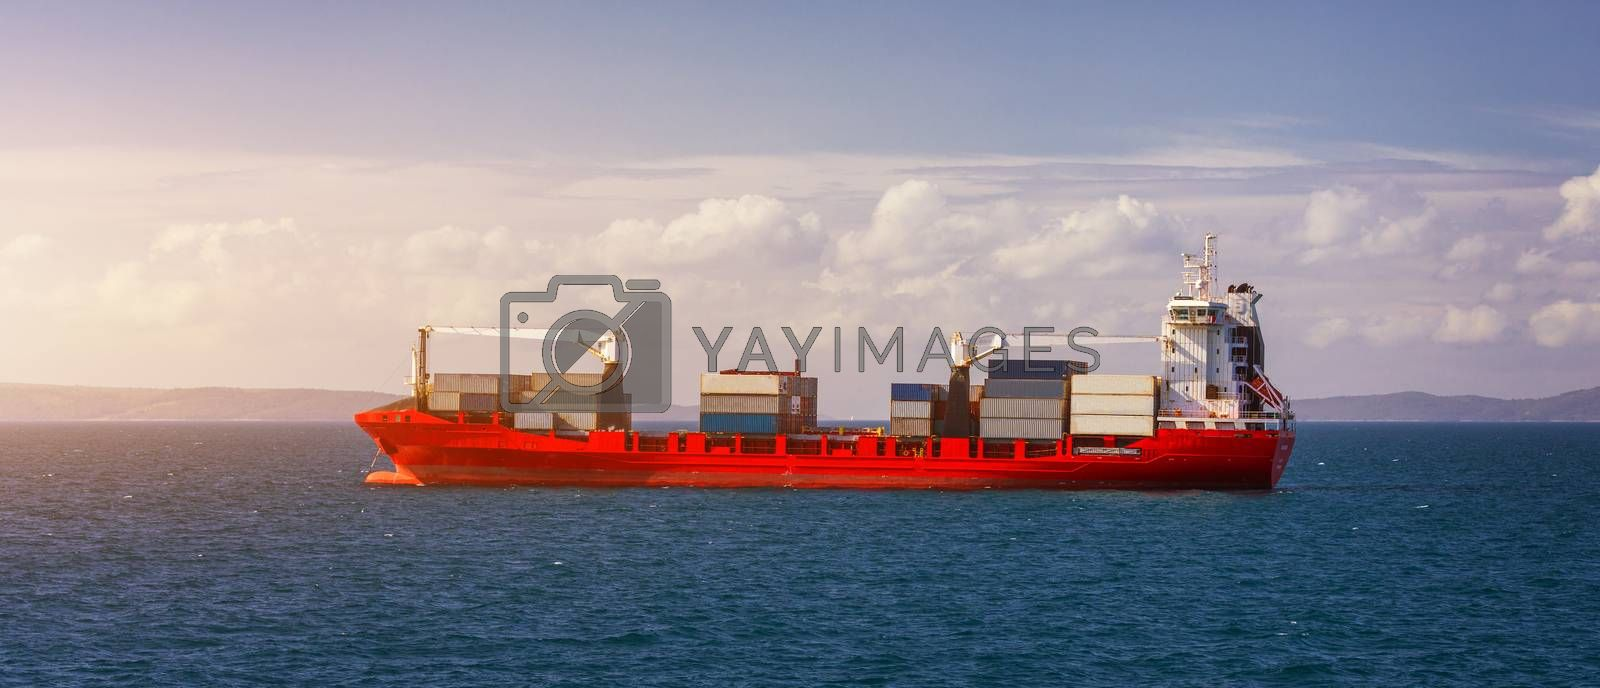 Logistics and transportation of International Container Cargo ship in the sea. International Container Cargo ship in the ocean, Freight Transportation, Shipping, Nautical Vessel.